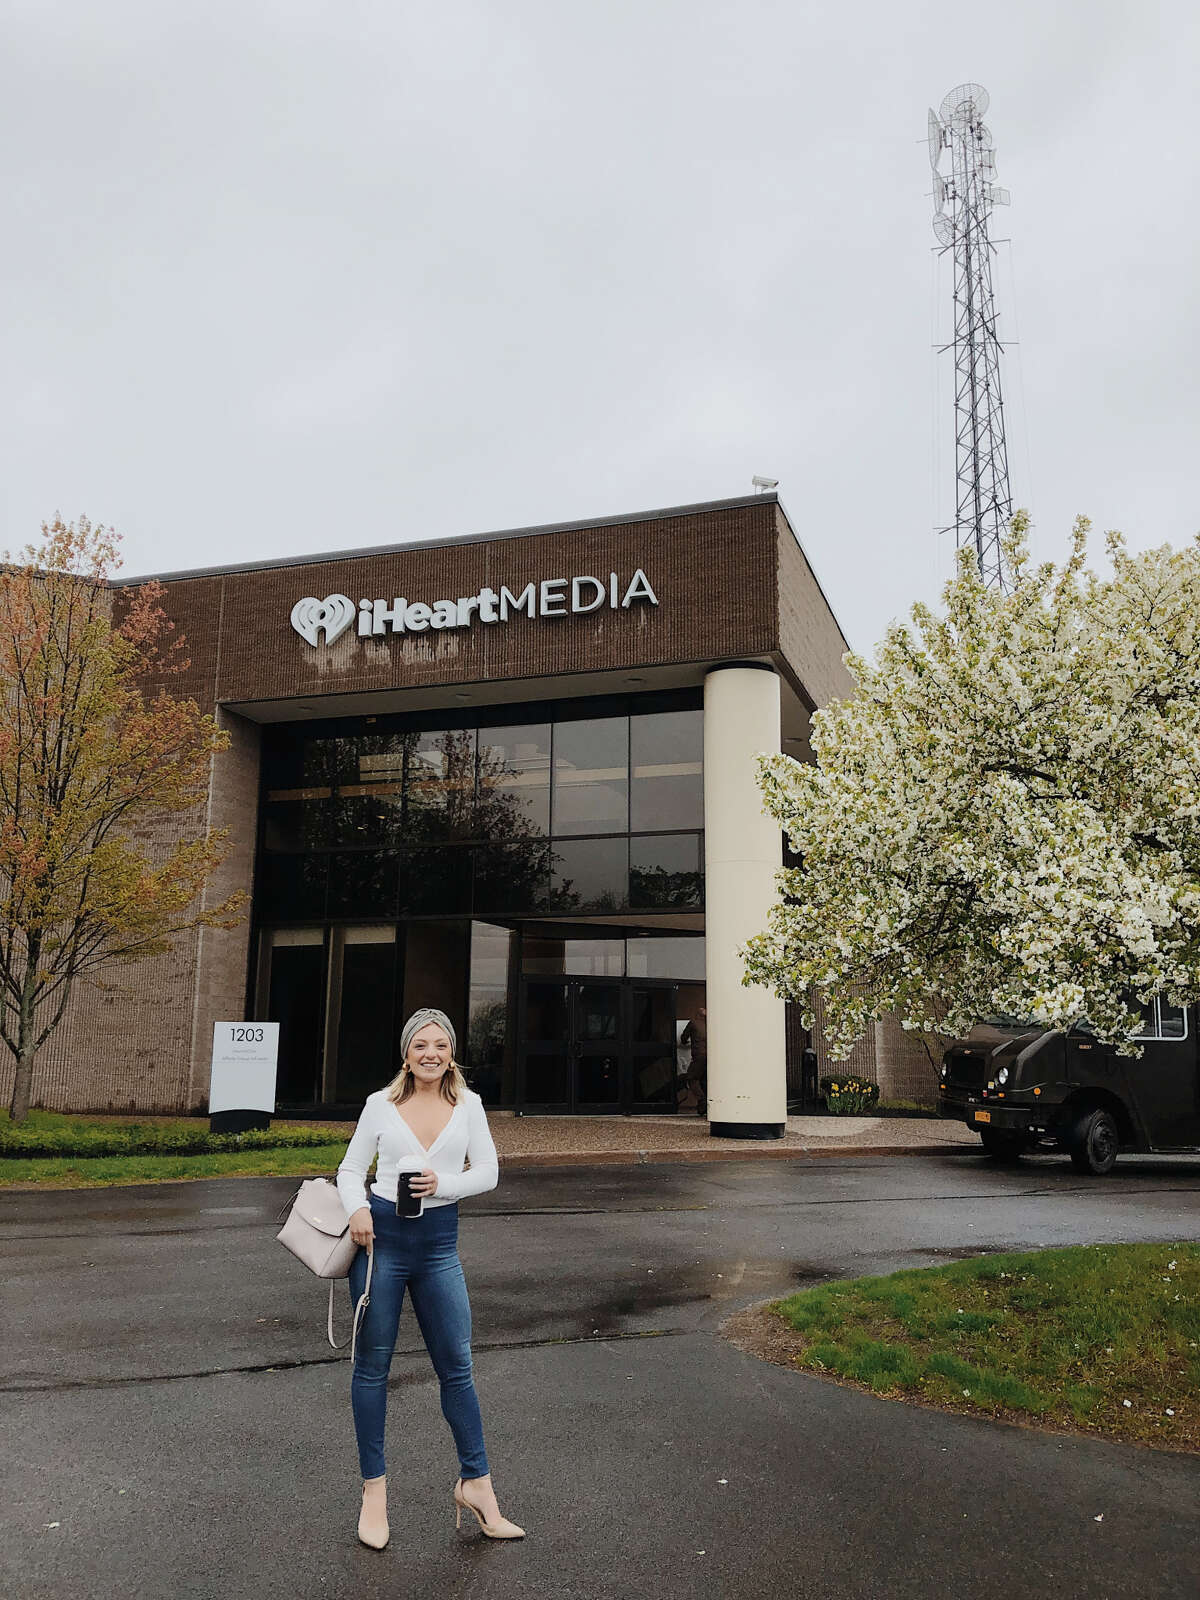 Taylor Rao of Two Buttons Deep stands outside the iHeartMedia building in Latham. She and colleague Jack Carpenter will be on the KISS 102-3 Low Budget Night Show with D Scott from 6 to 8 p.m. each Friday.